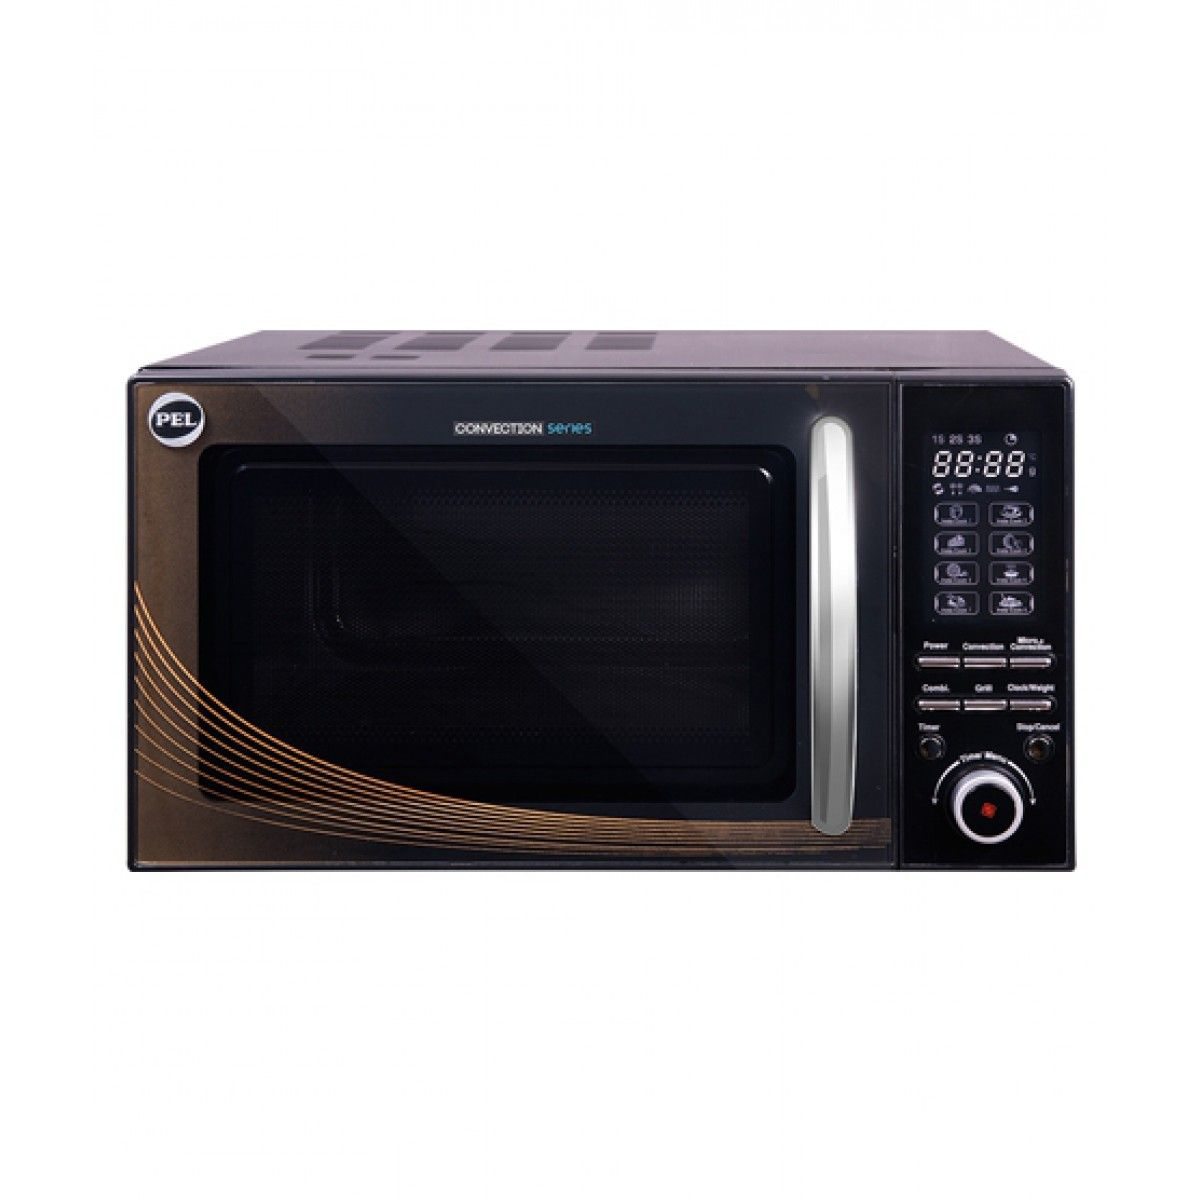 pel convection pmo 25l microwave oven